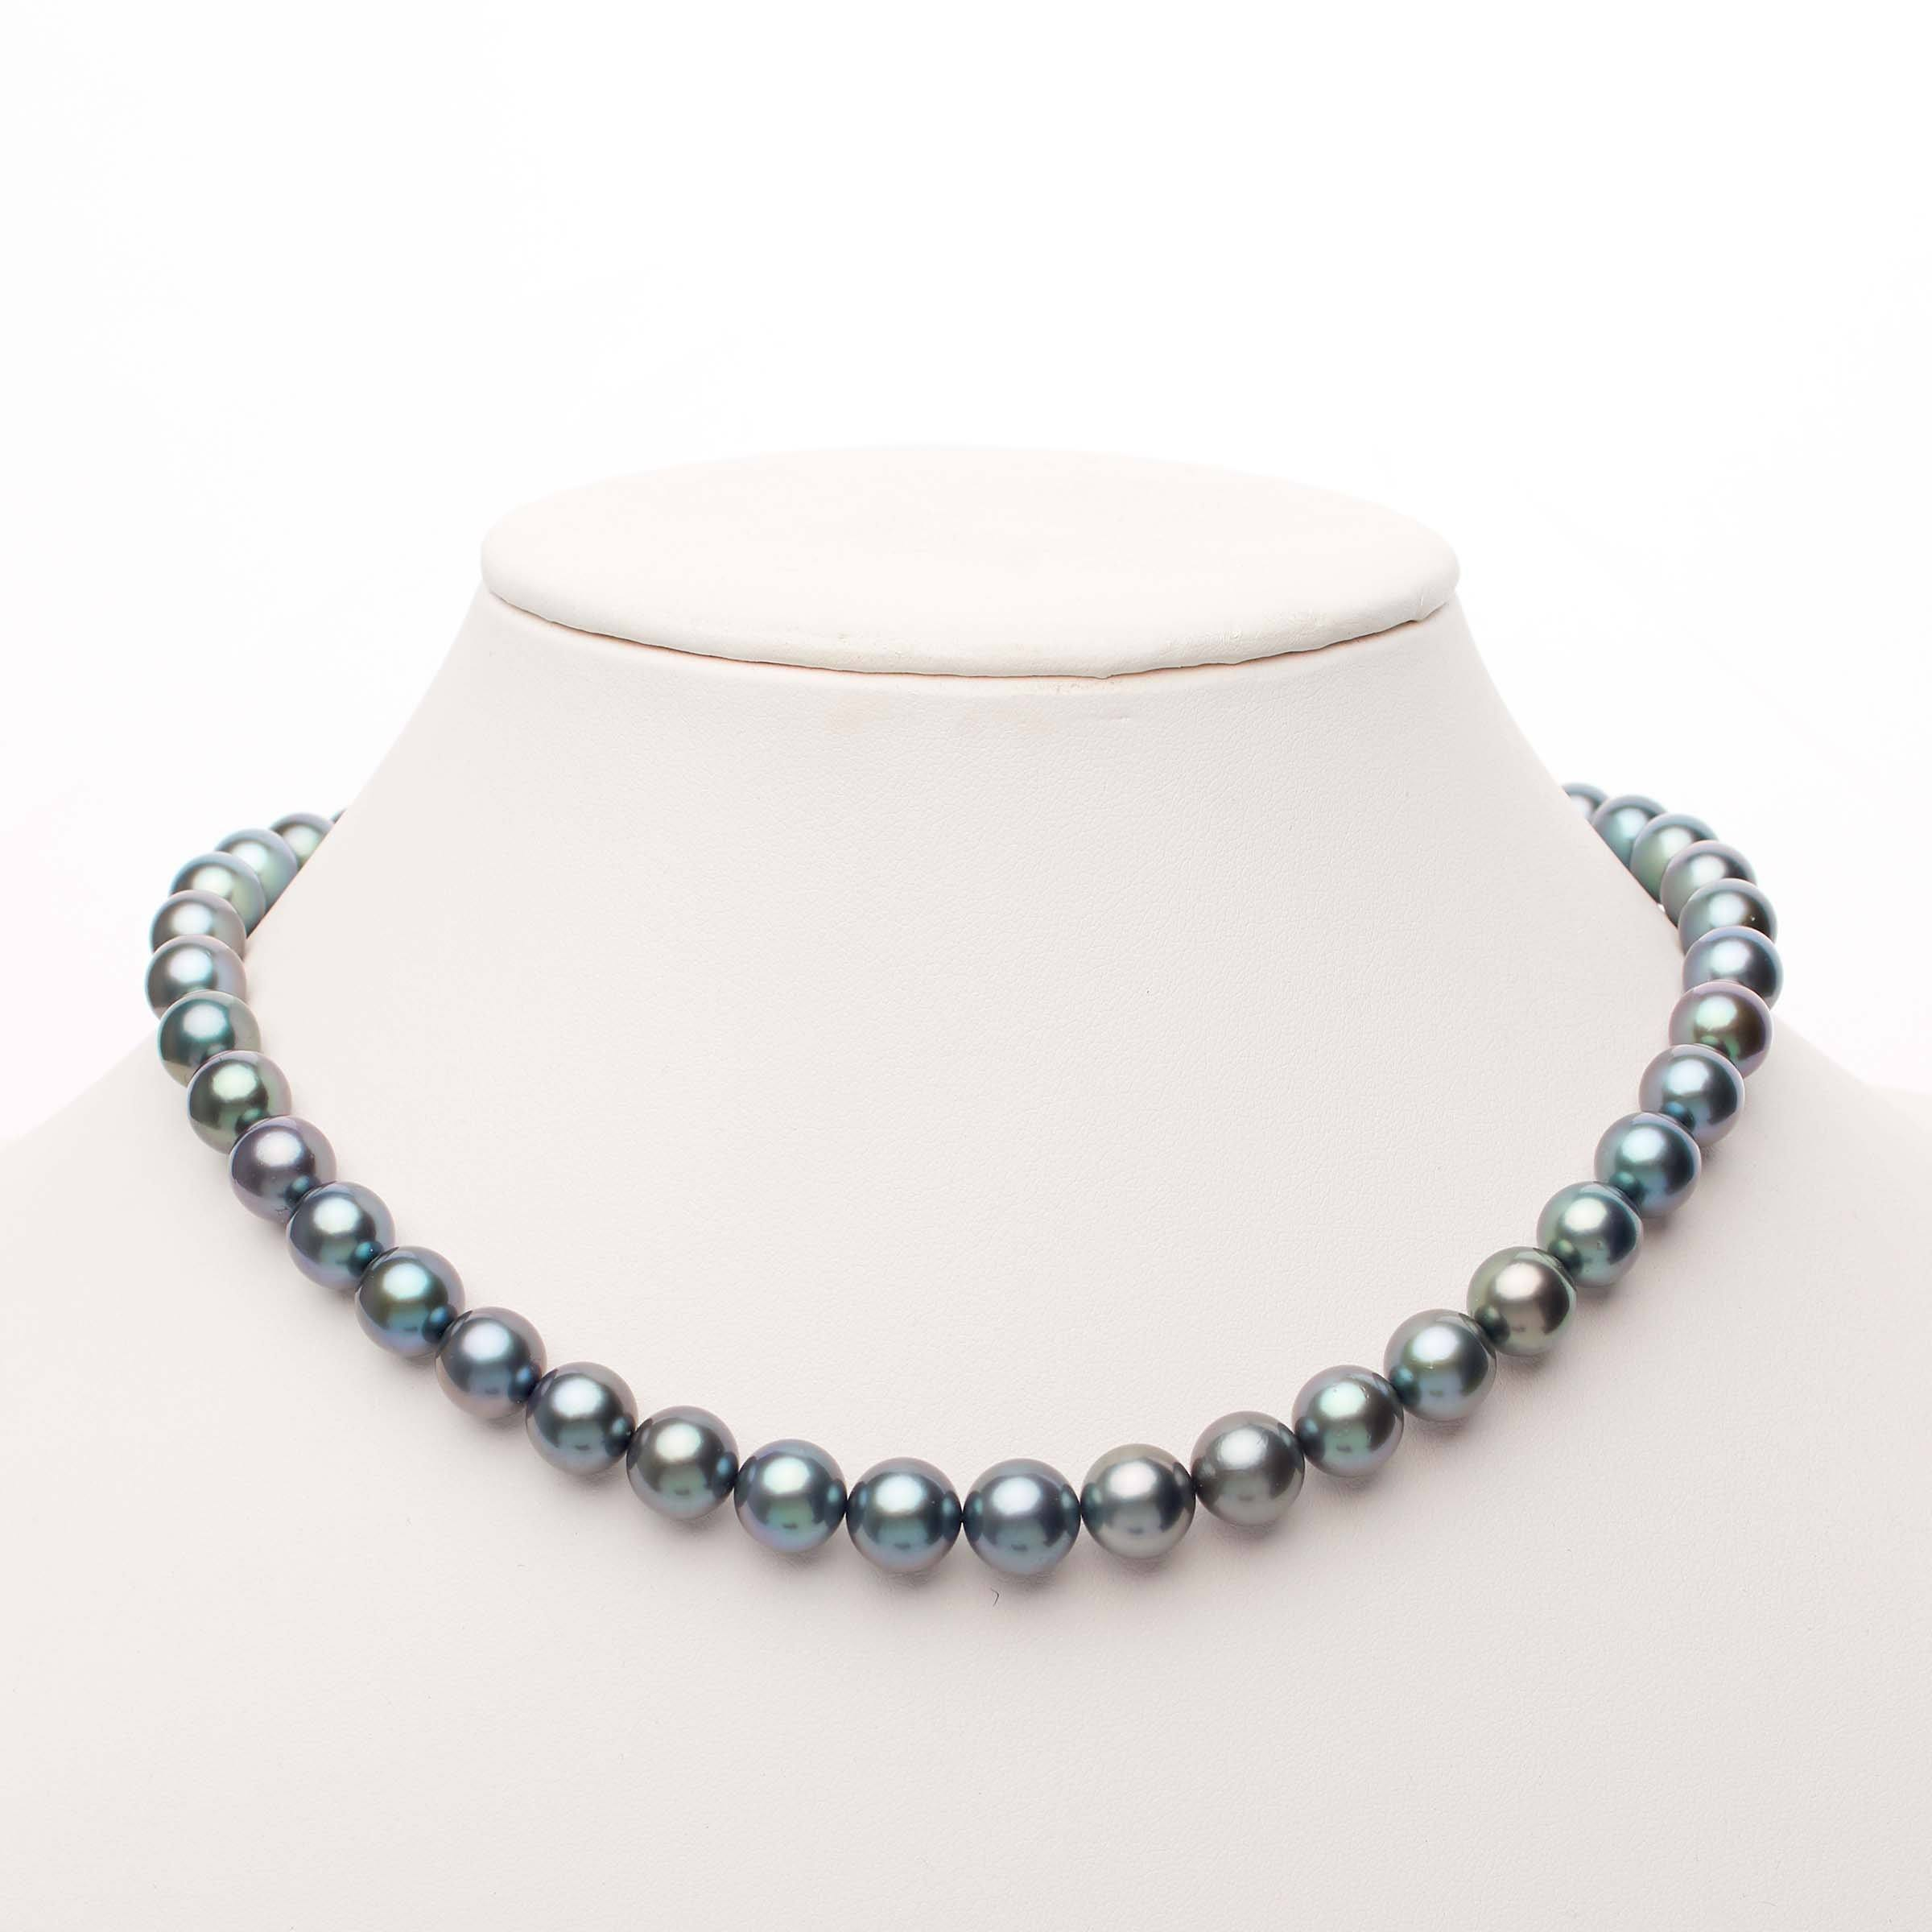 18-inch 8.1-9.9 mm AAA Round Tahitian Pearl Necklace